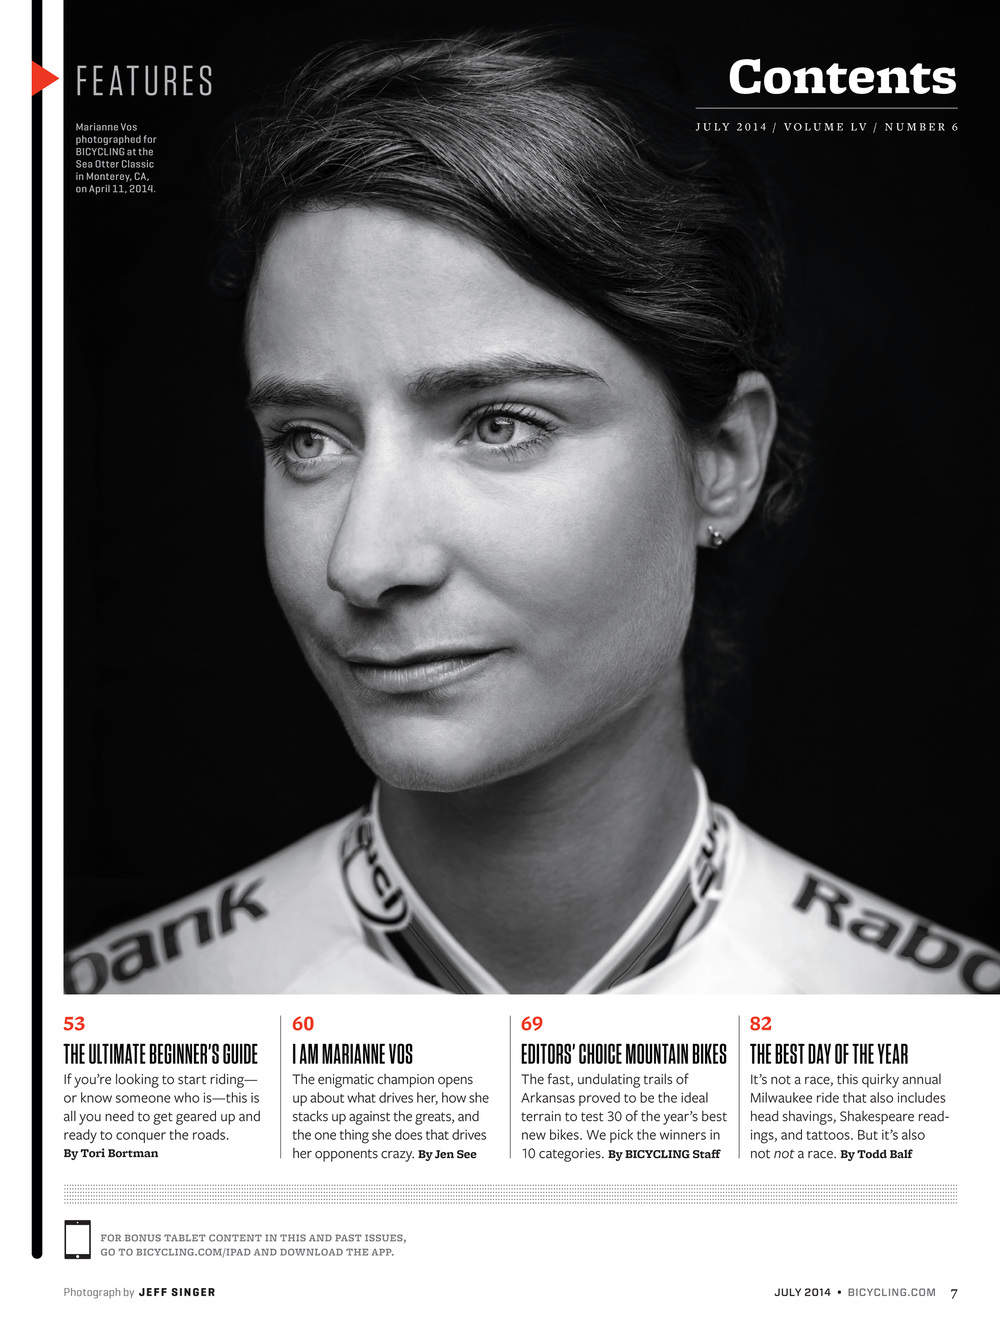 Marianne Vos, Bicycling Magazine Contents Page